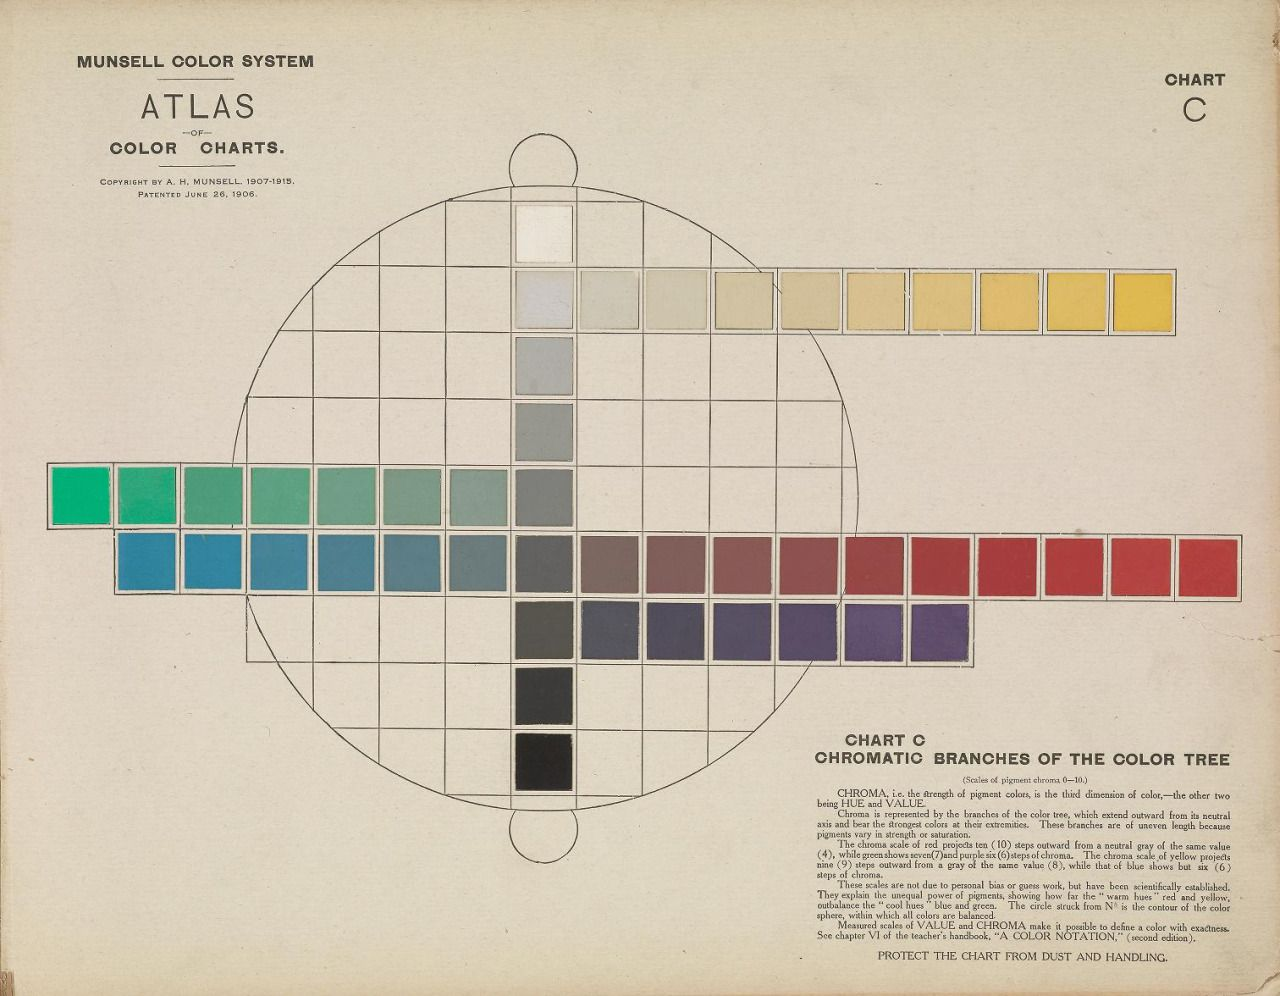 Heaveninawildflower - smithsonianlibraries: The Munsell color system ...